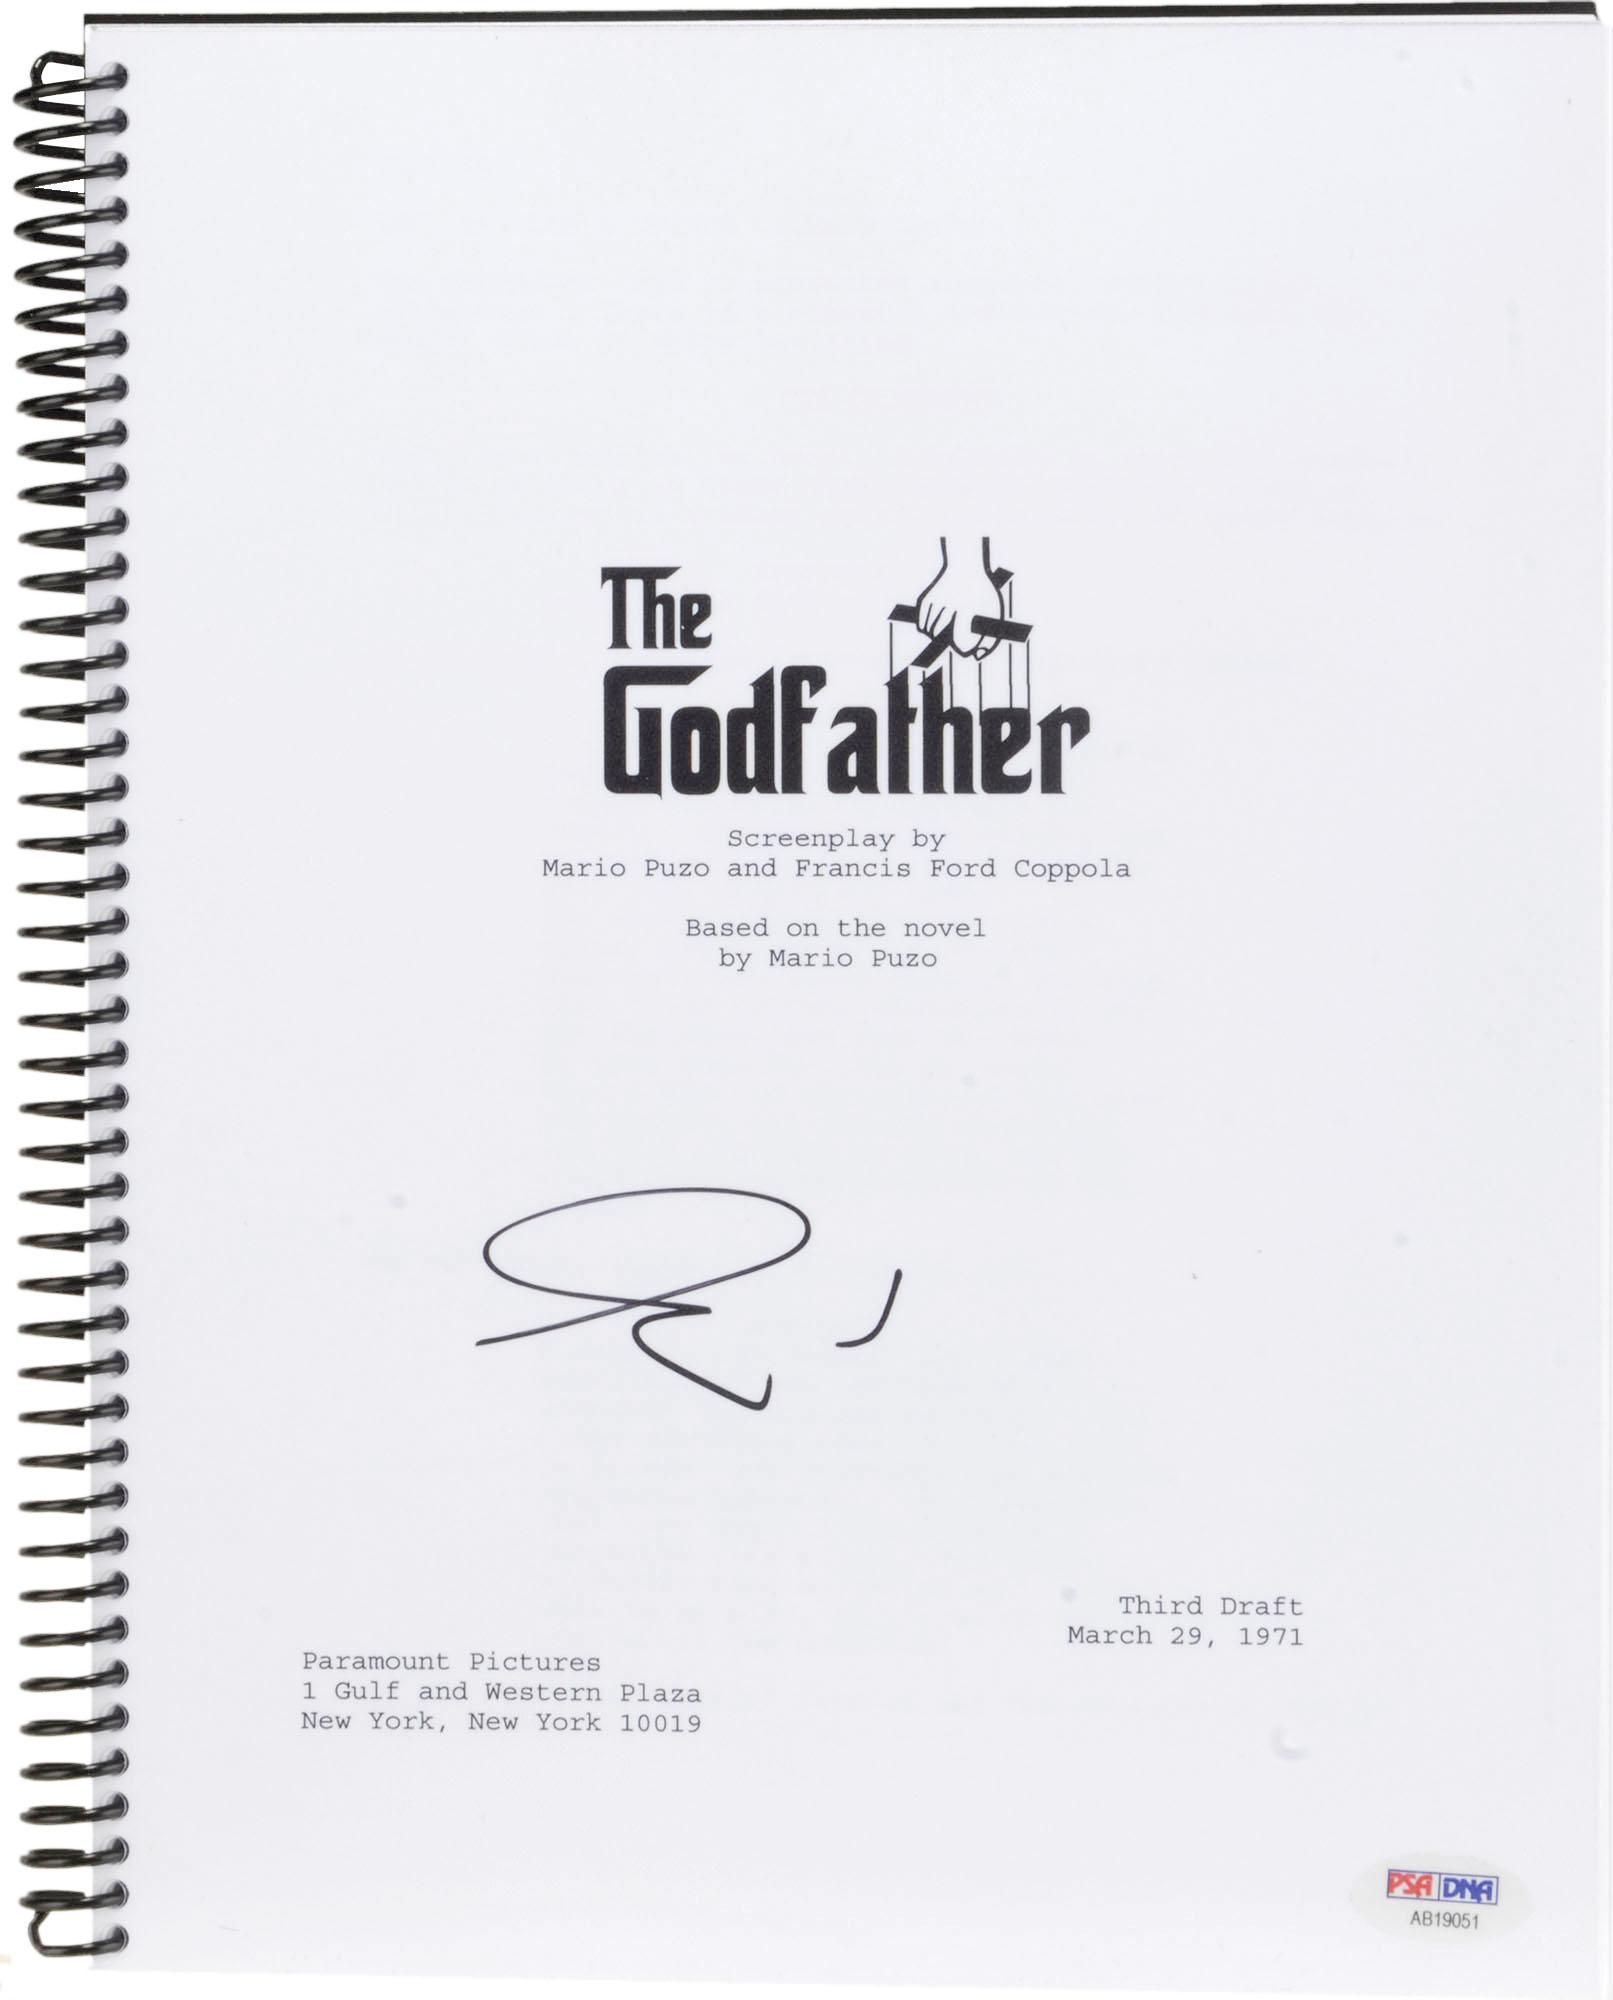 Al Pacino Autographed The Godfather Replica Movie Script - PSA/DNA